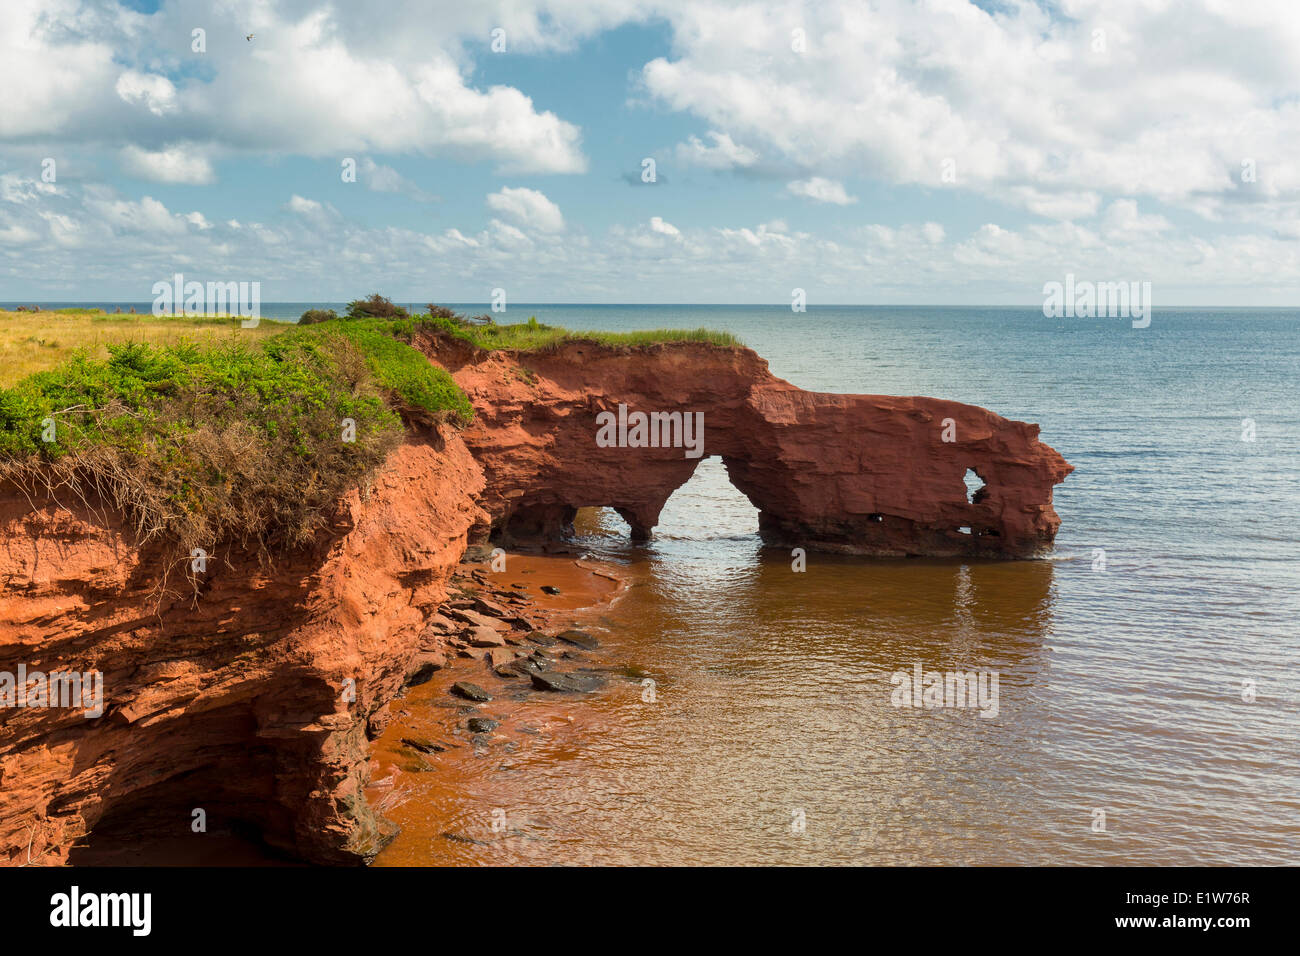 Eroded red sandstone cliffs, Kildare Capes, Prince Edward Island, Canada - Stock Image